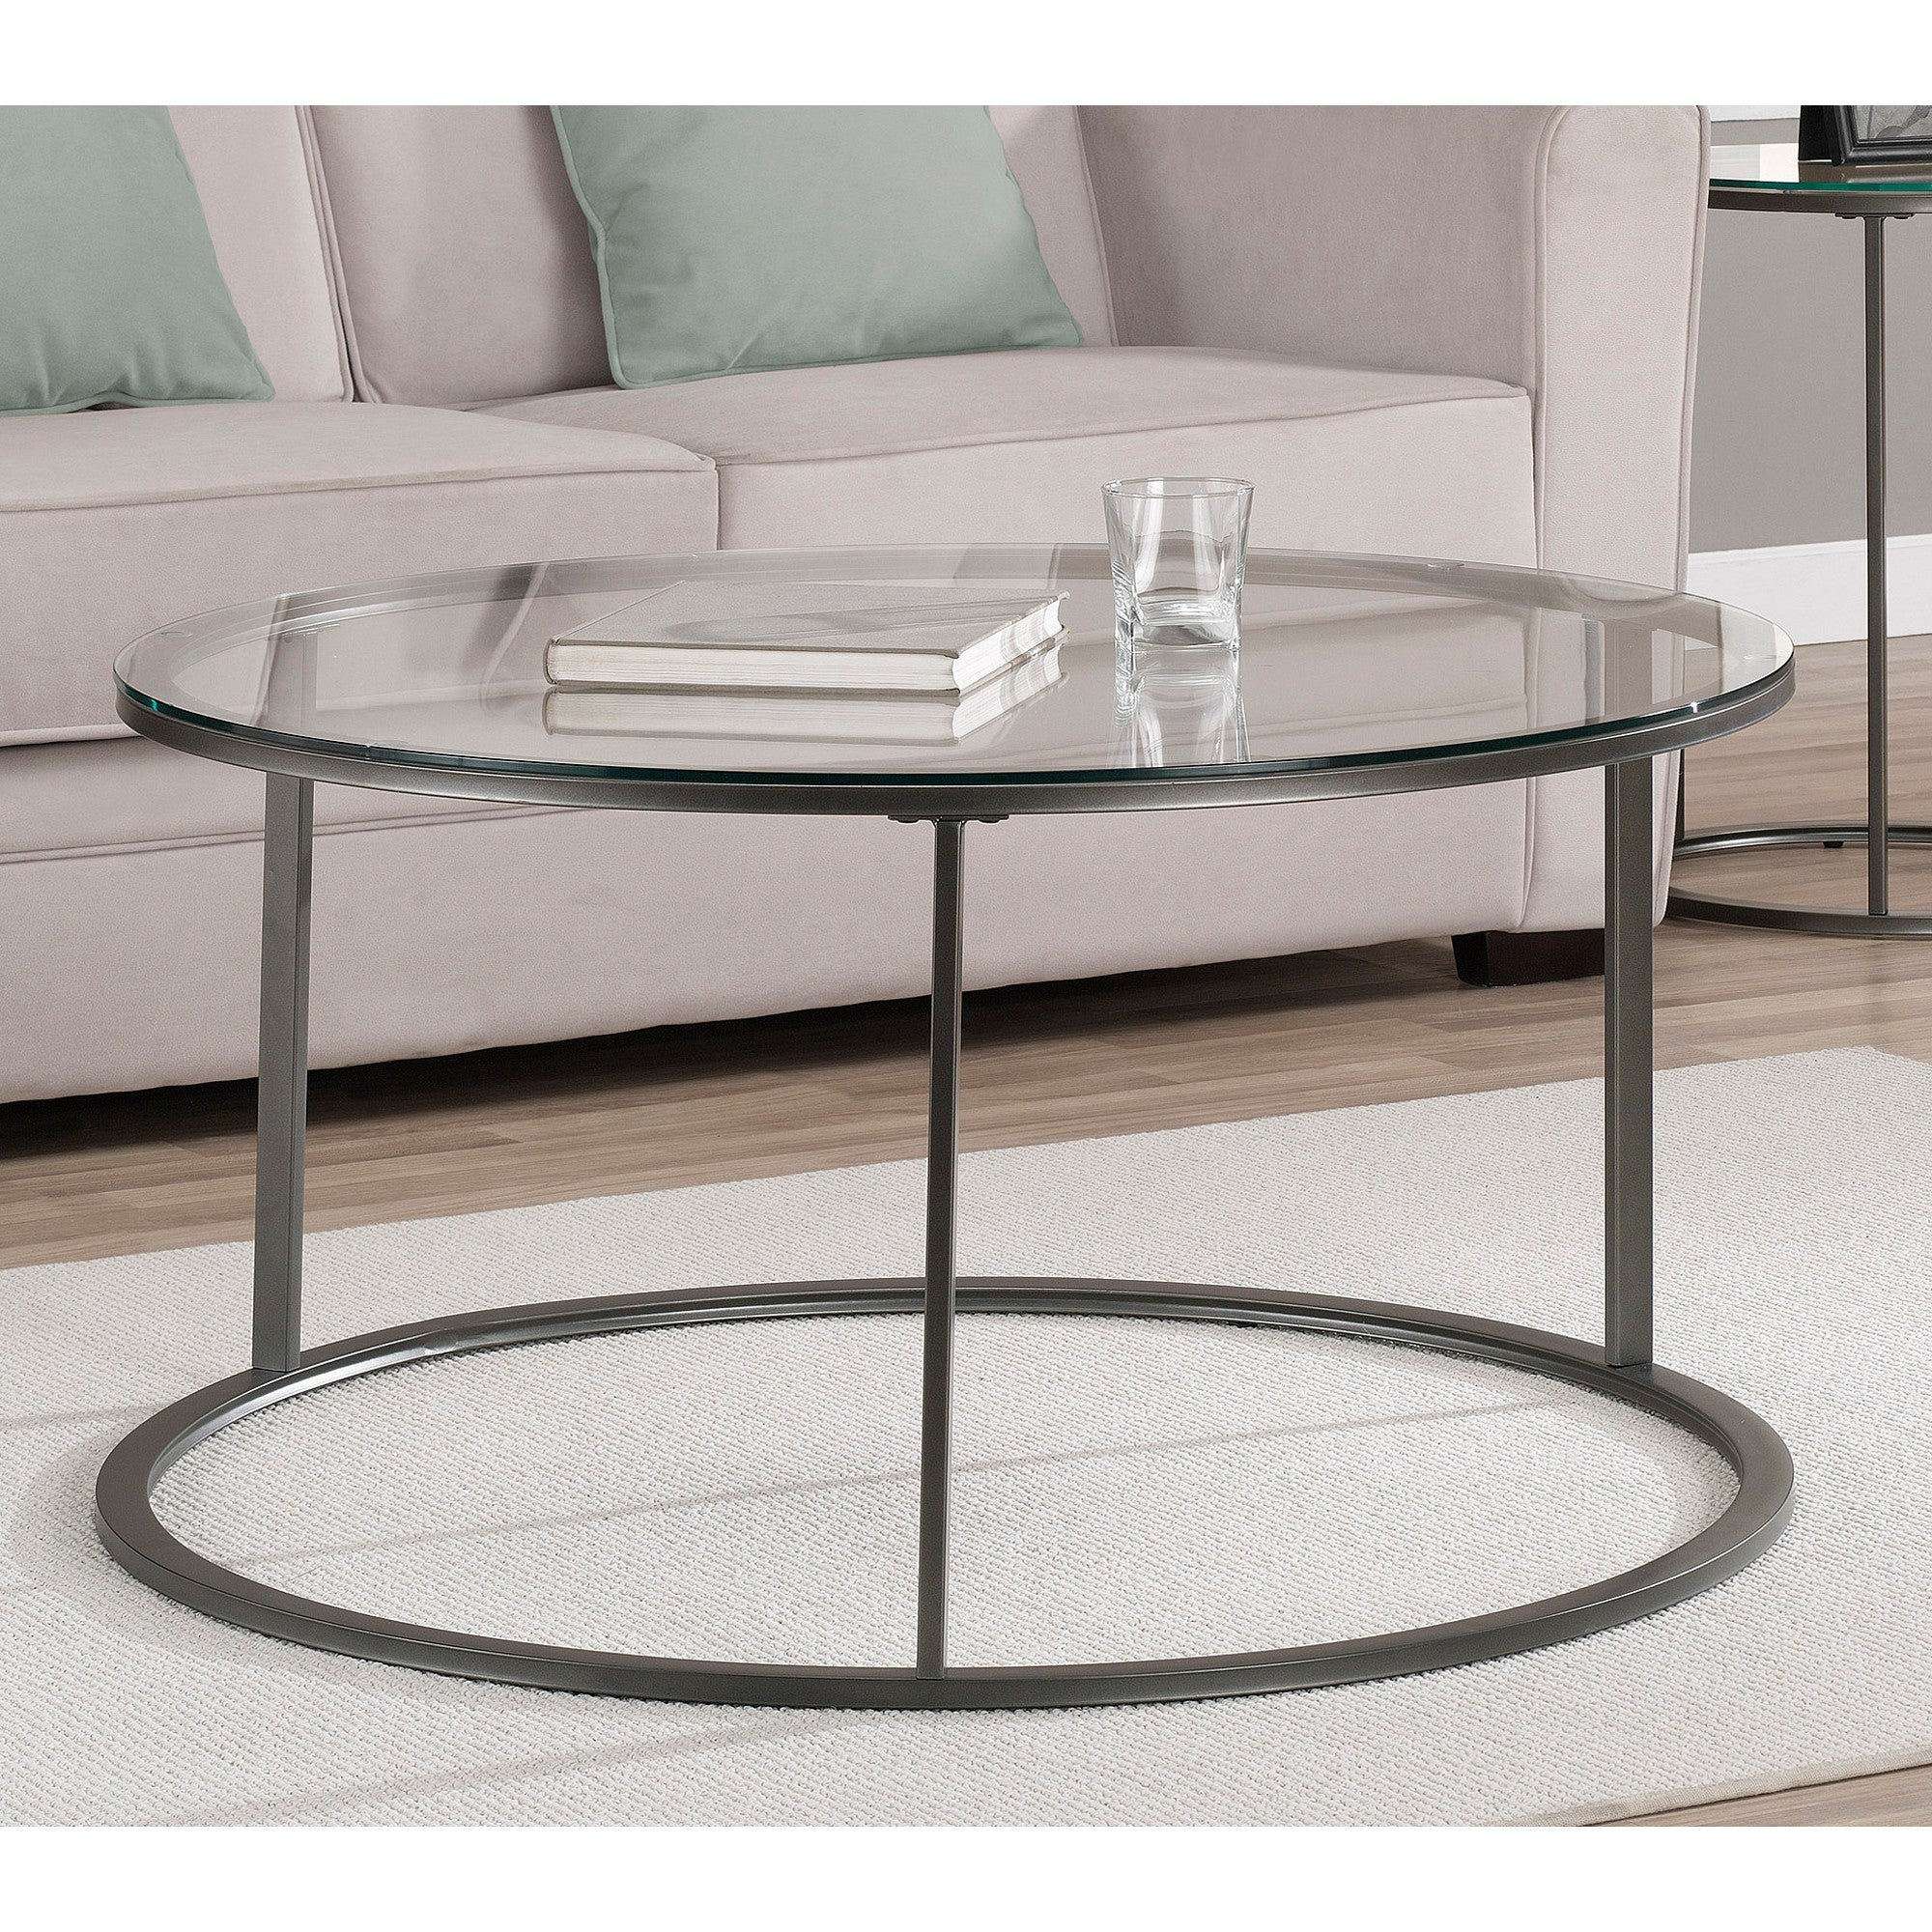 Round Glass Top Metal Coffee Table Overstock Shopping